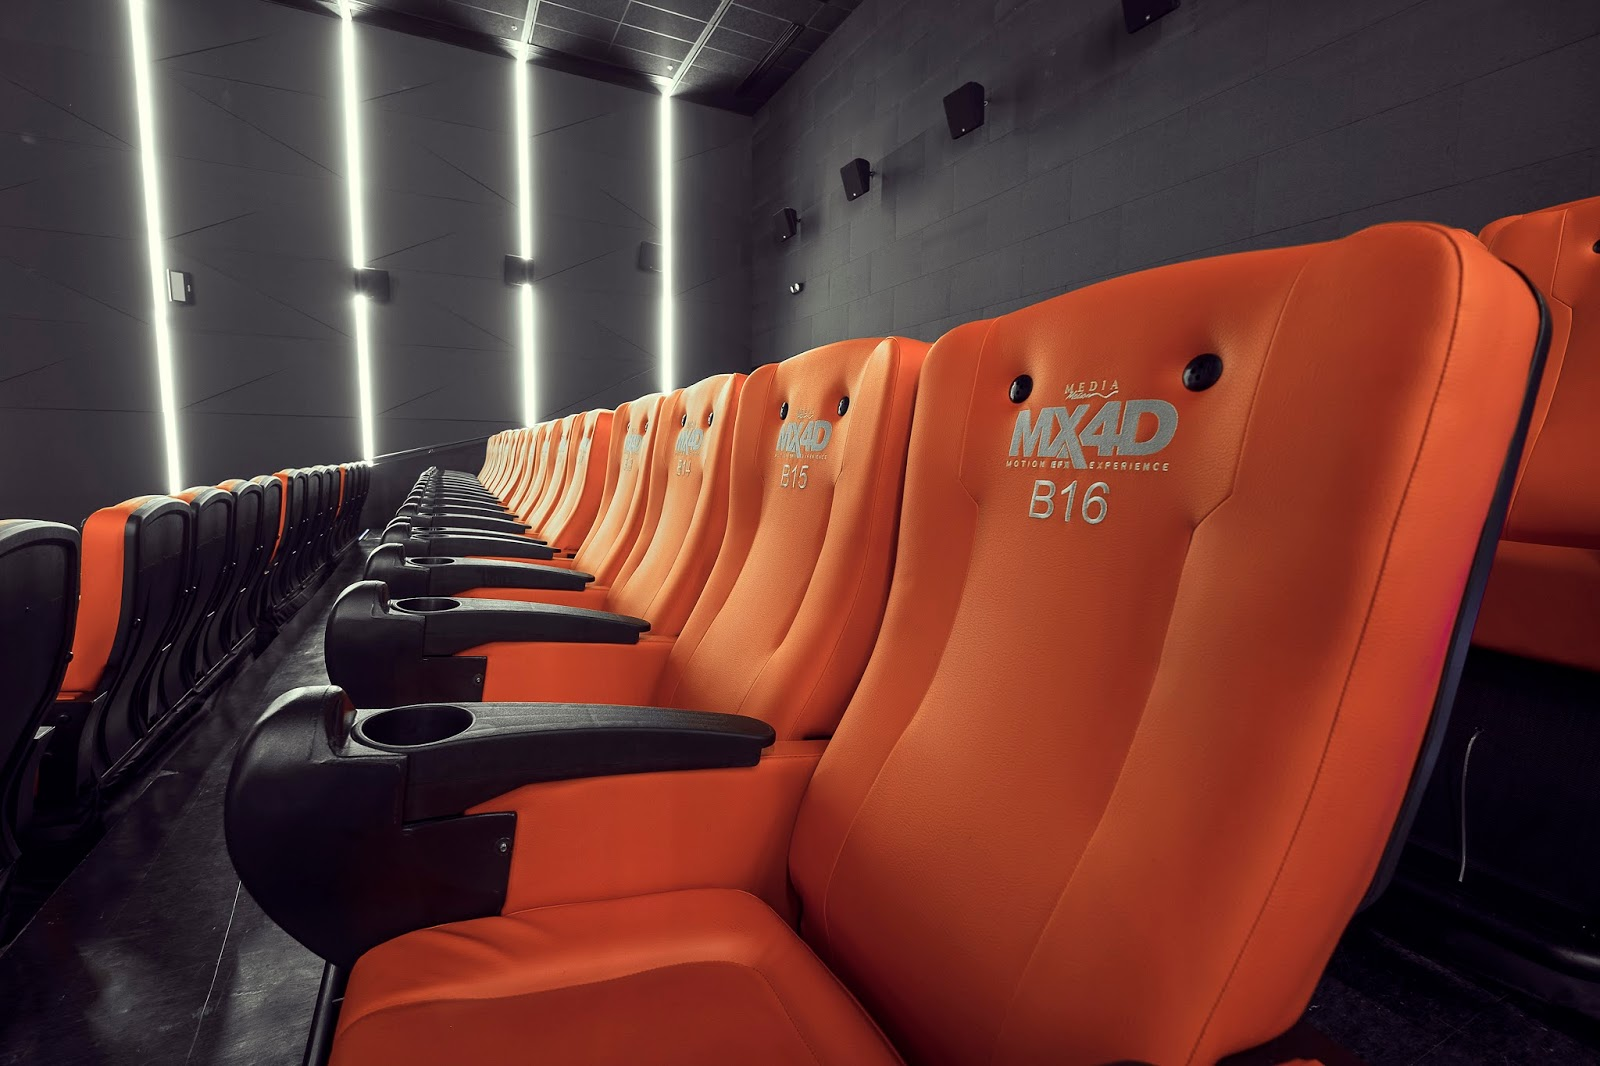 vista posture chair antique chippendale chairs mx4d motion efx theater only at cinemas aci girl